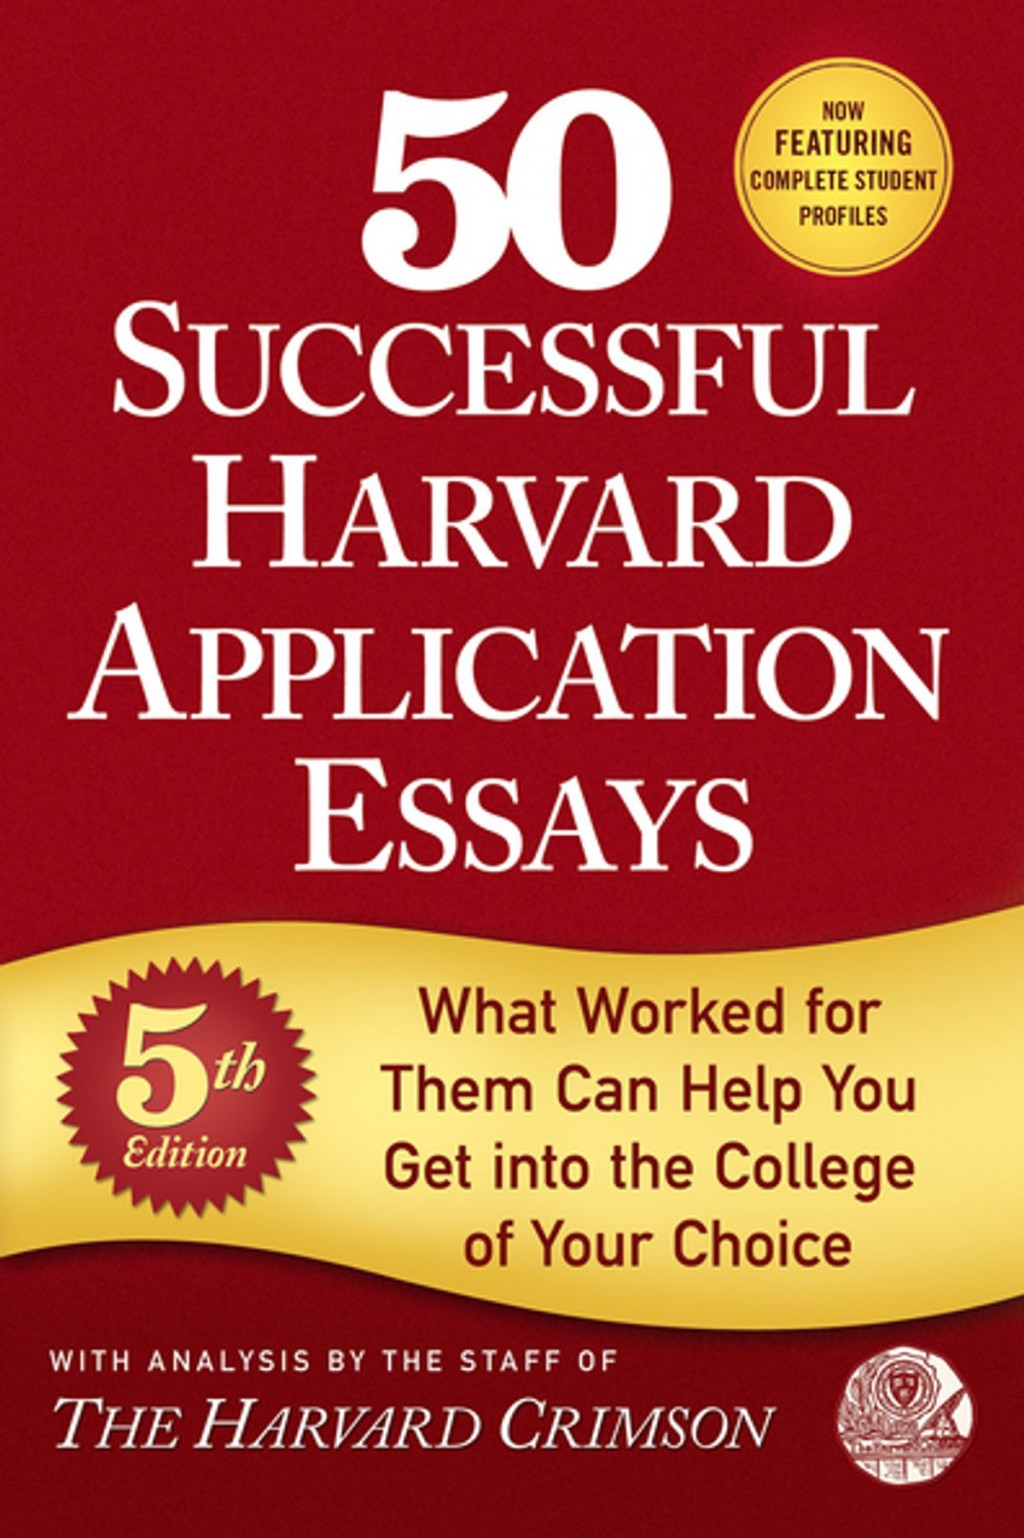 020 Essays 5th Edition Successful Harvard Application Essay Imposing 50 Fifty Great Pdf Free A Portable Anthology Ebook Large